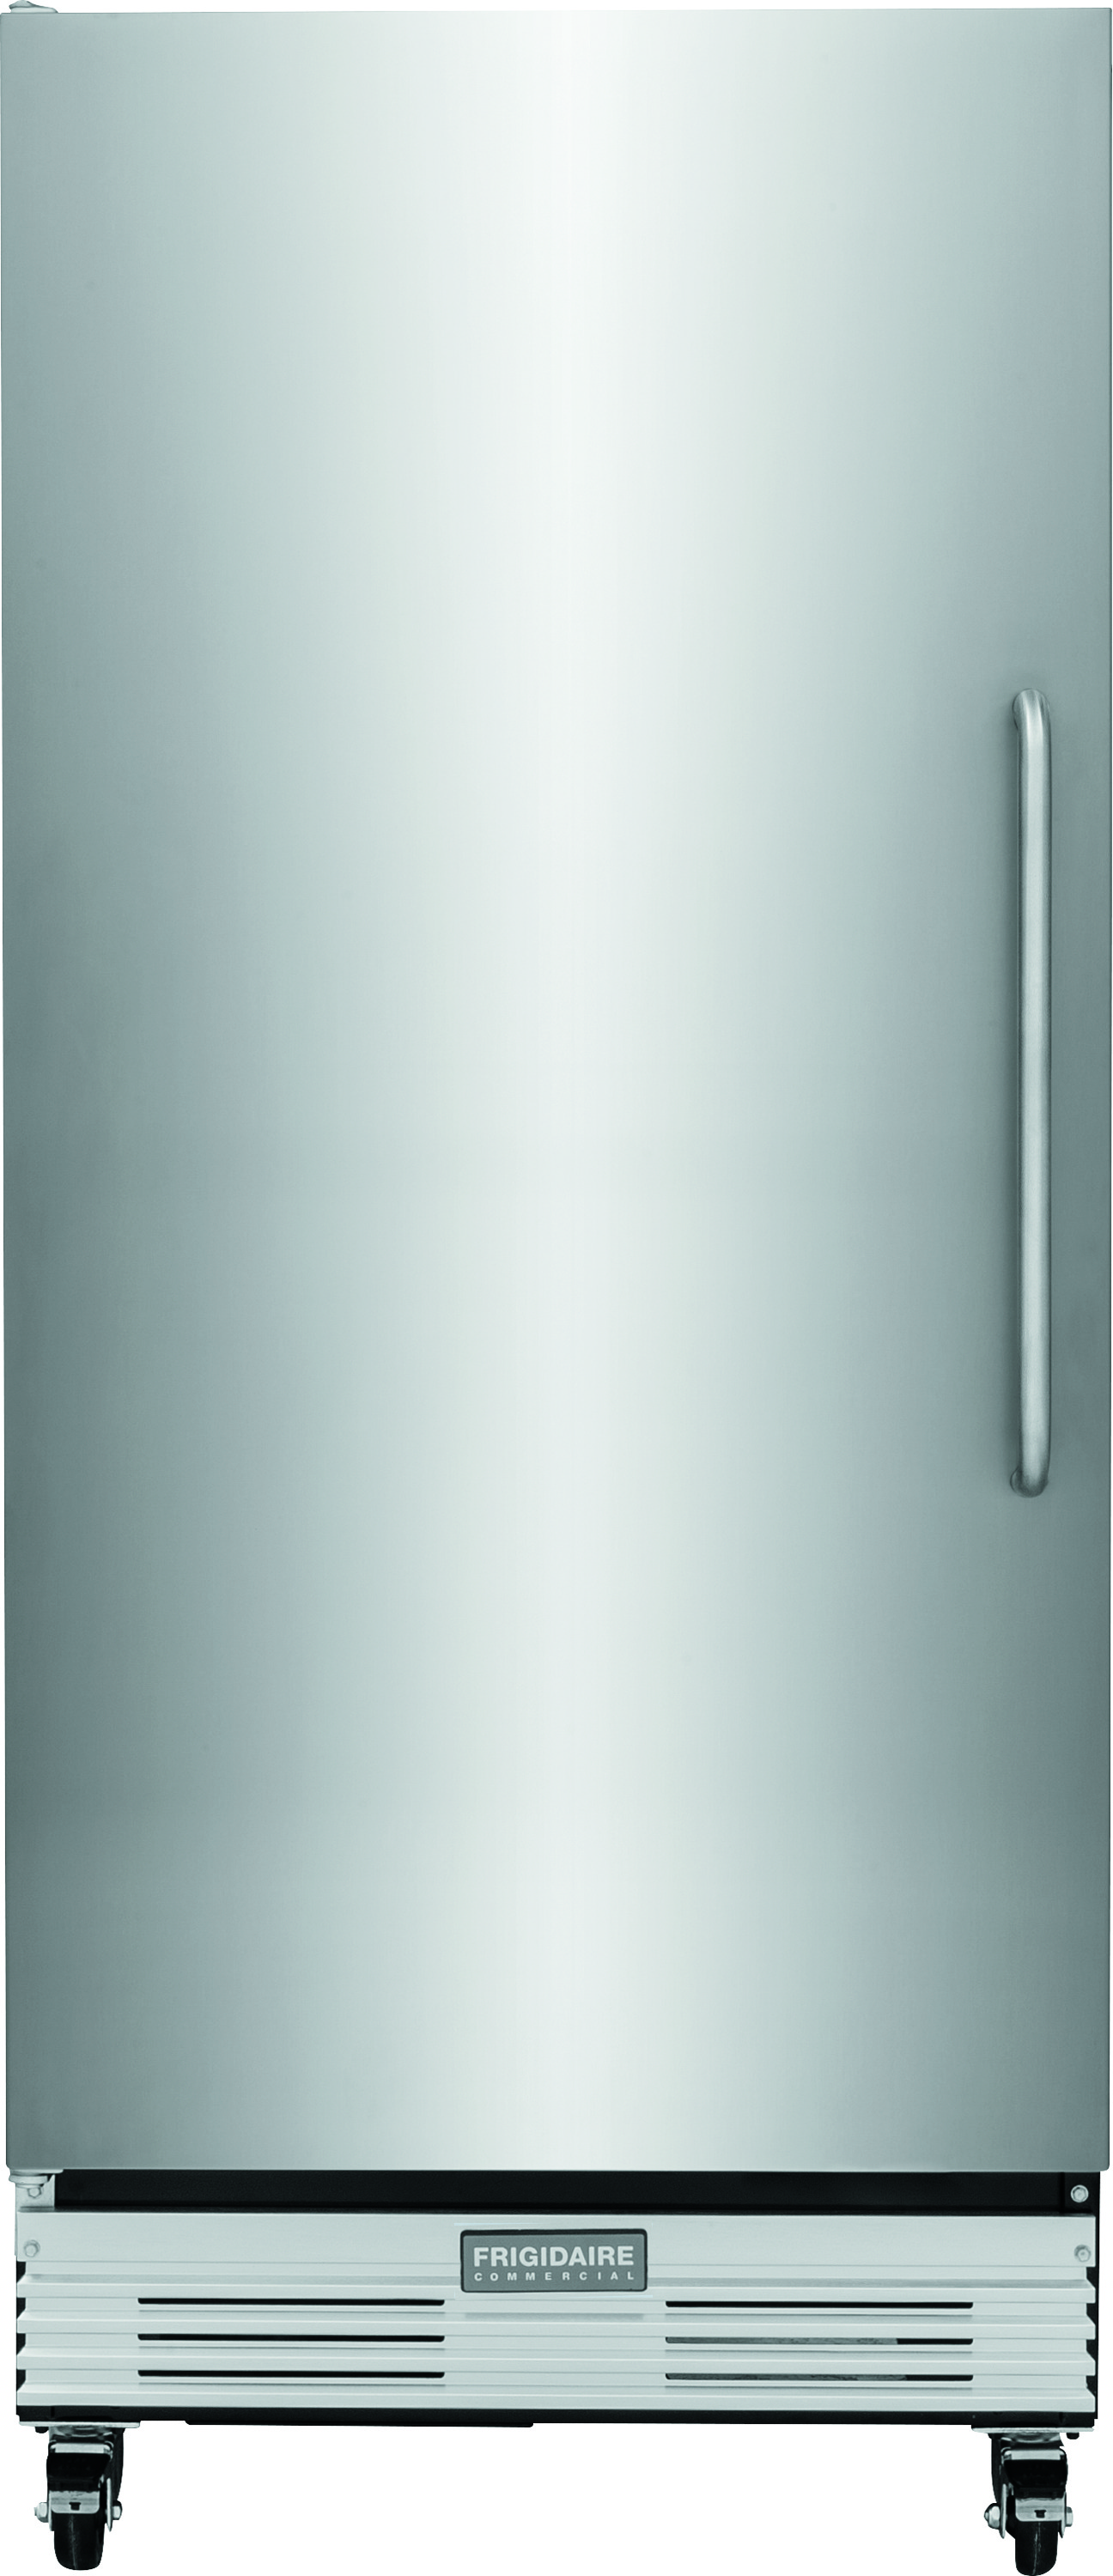 17.9 Cu. Ft. Upright Freezer